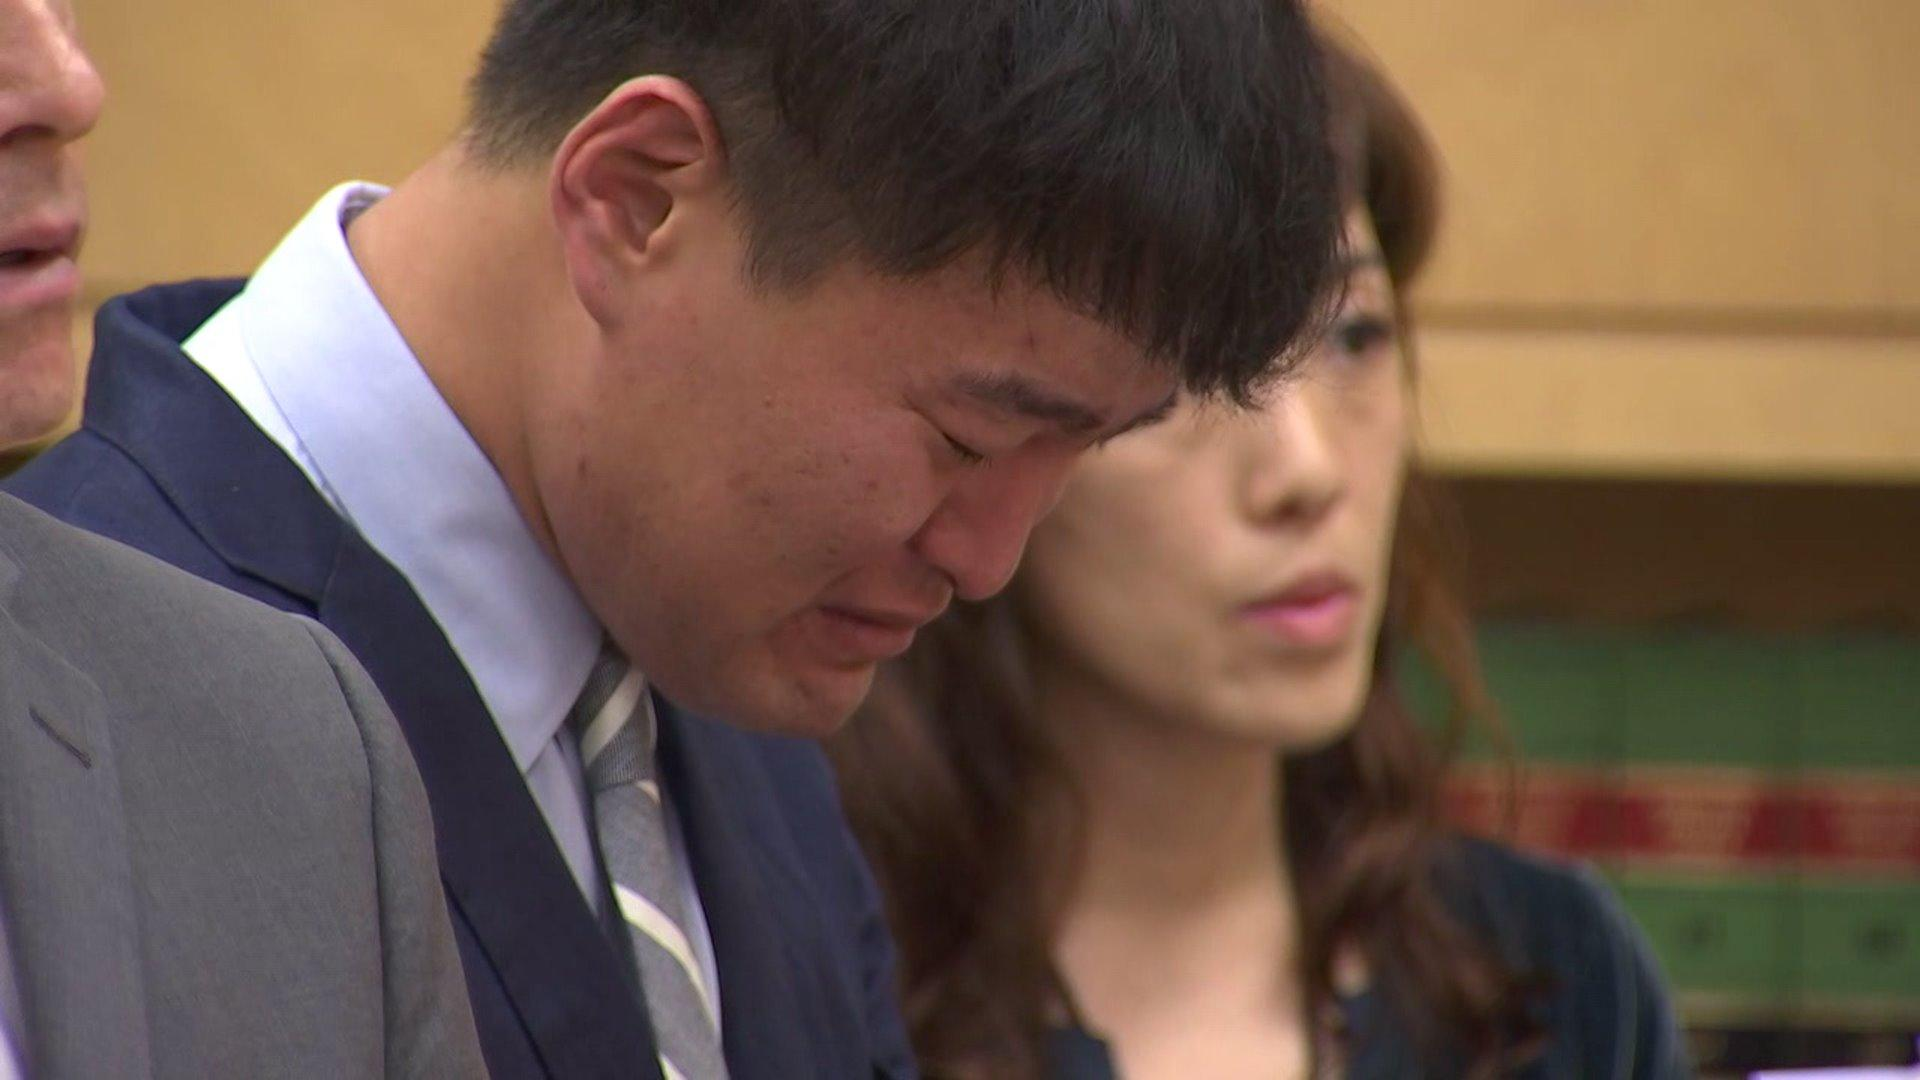 Convenience Store Owner Sentenced For Fatally Shooting Shoplifter